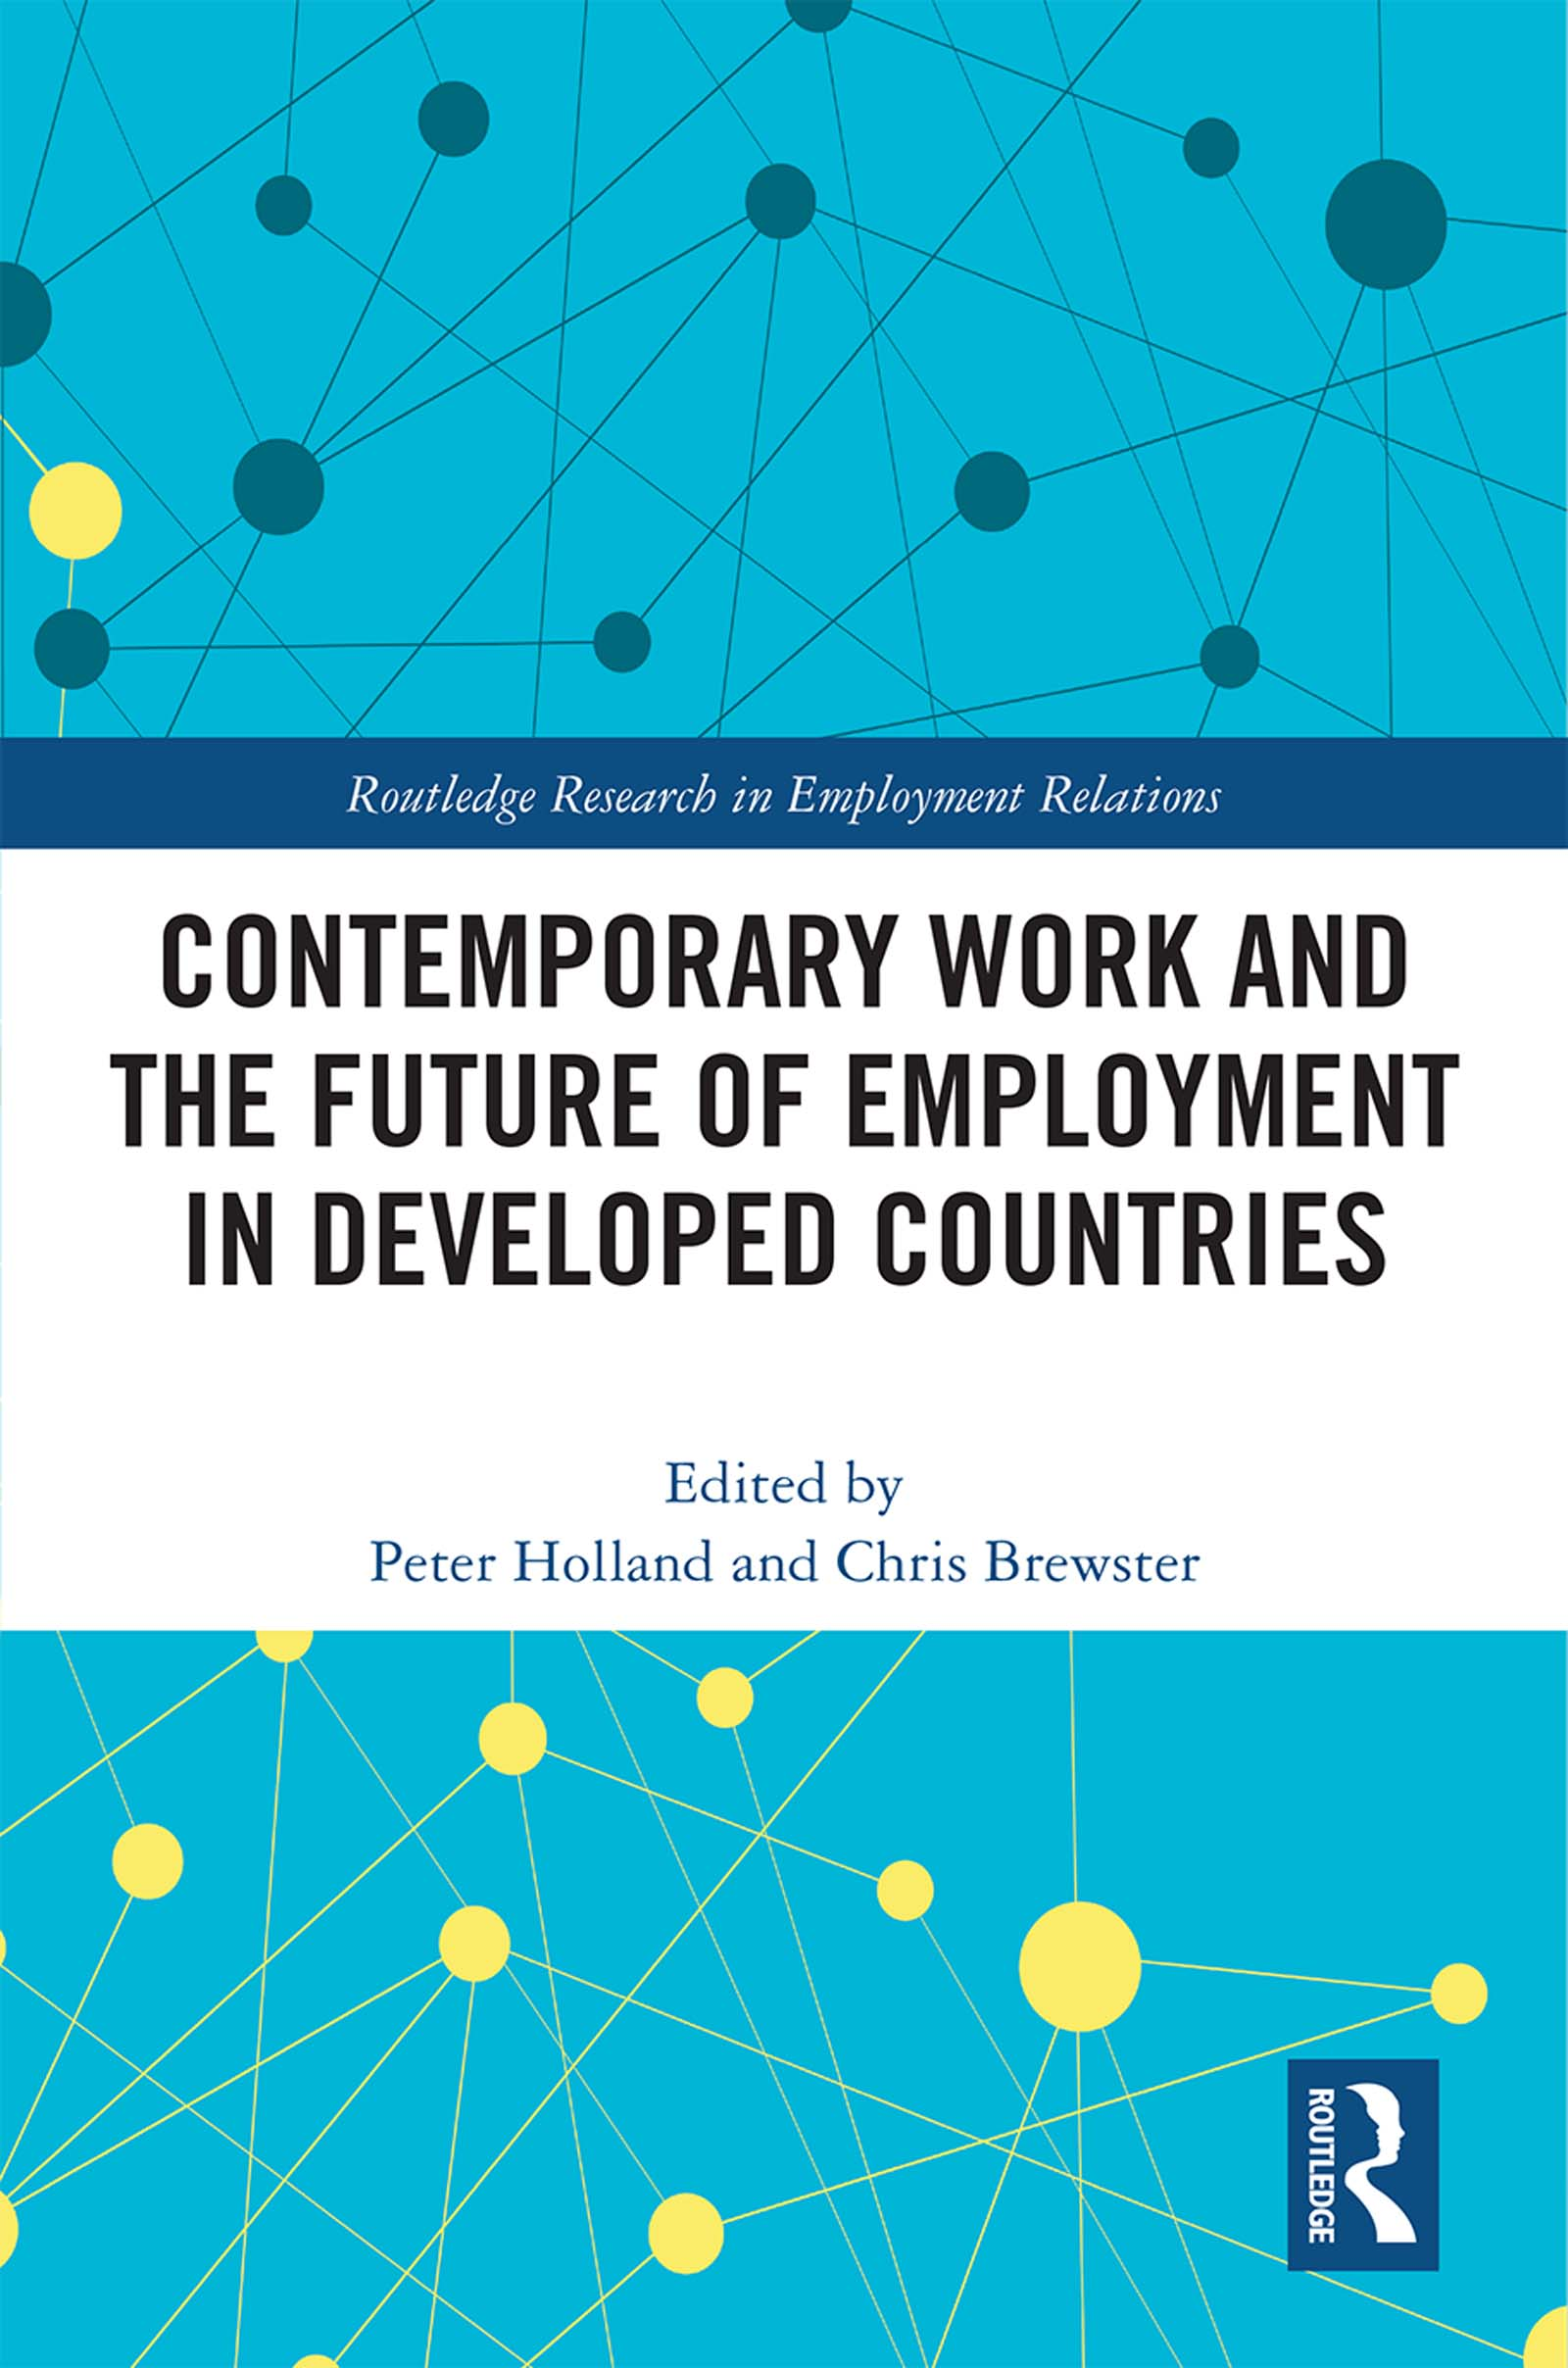 Contemporary Work and the Future of Employment in Developed Countries